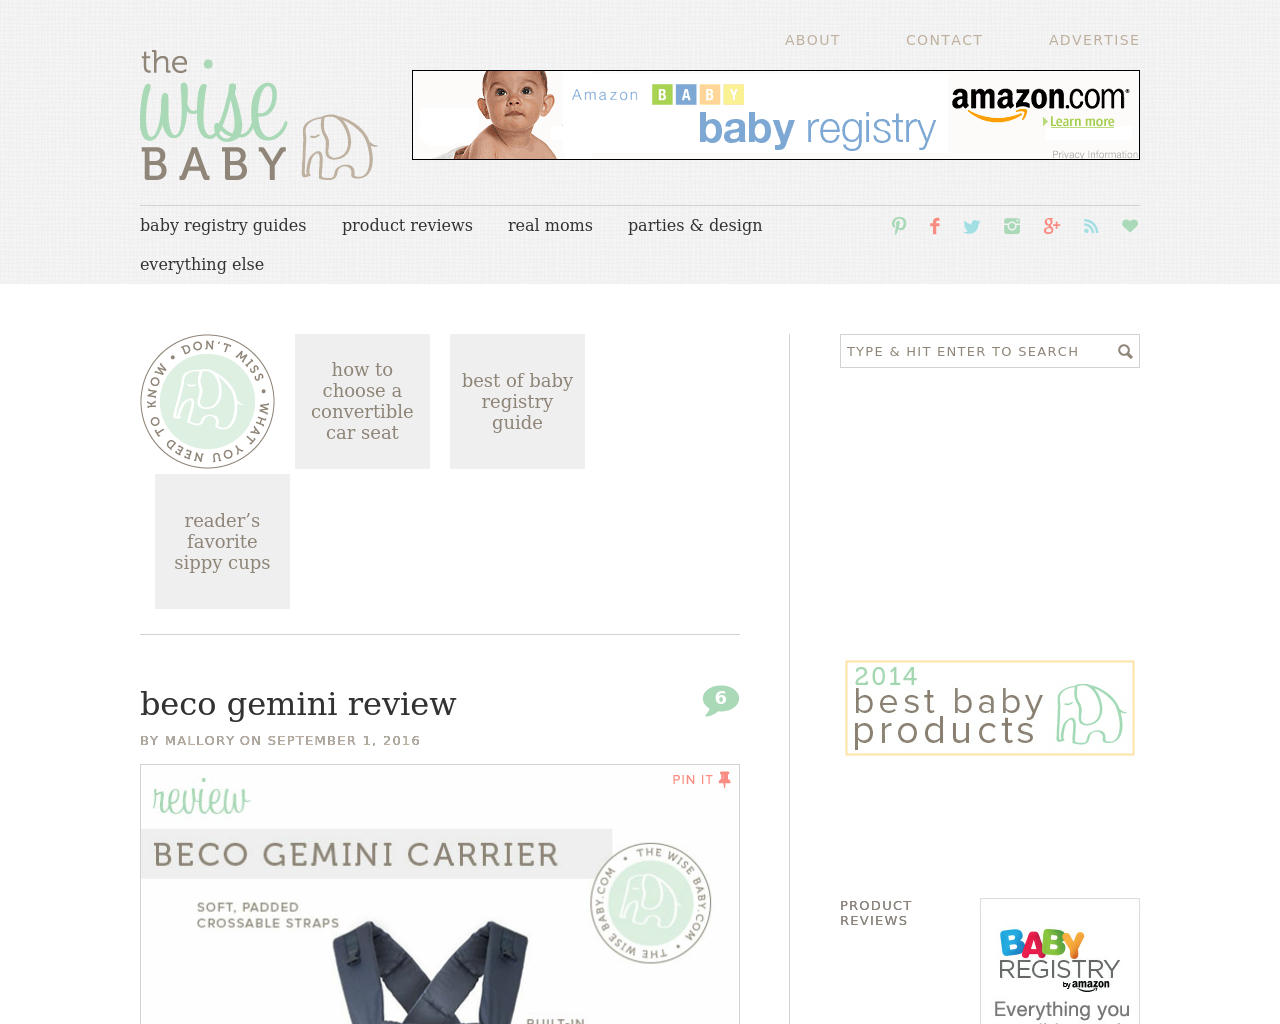 THE-WISE-BABY-Advertising-Reviews-Pricing